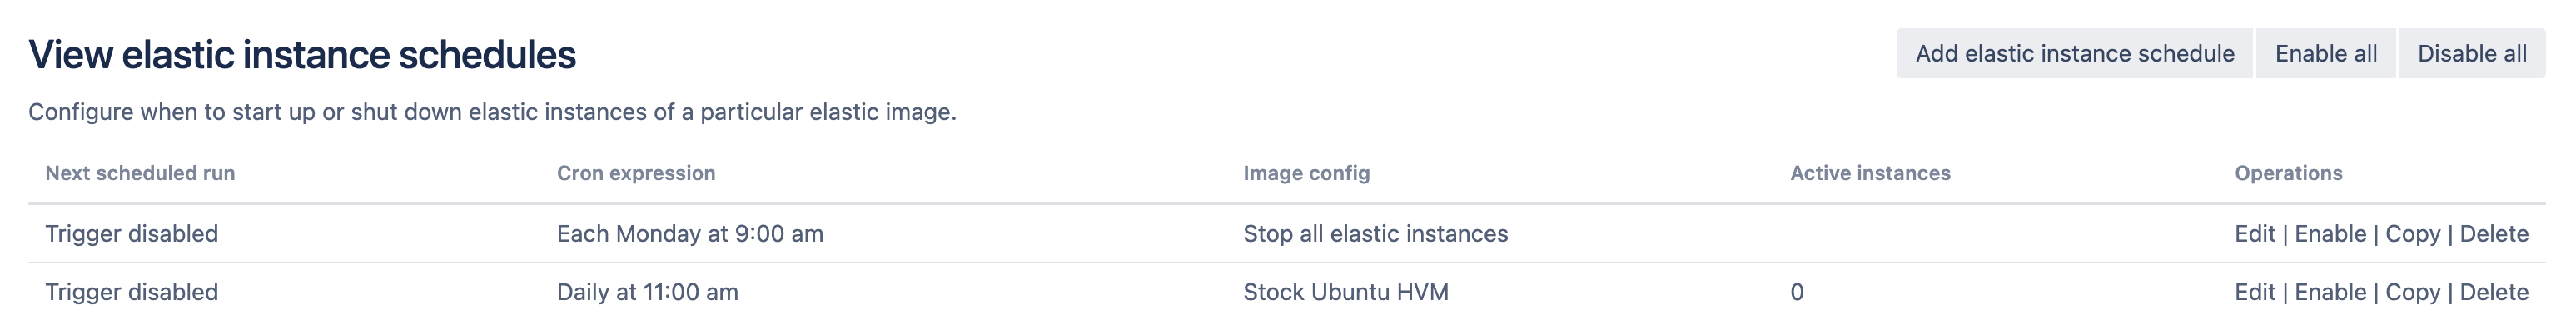 View elastic instance schedules page